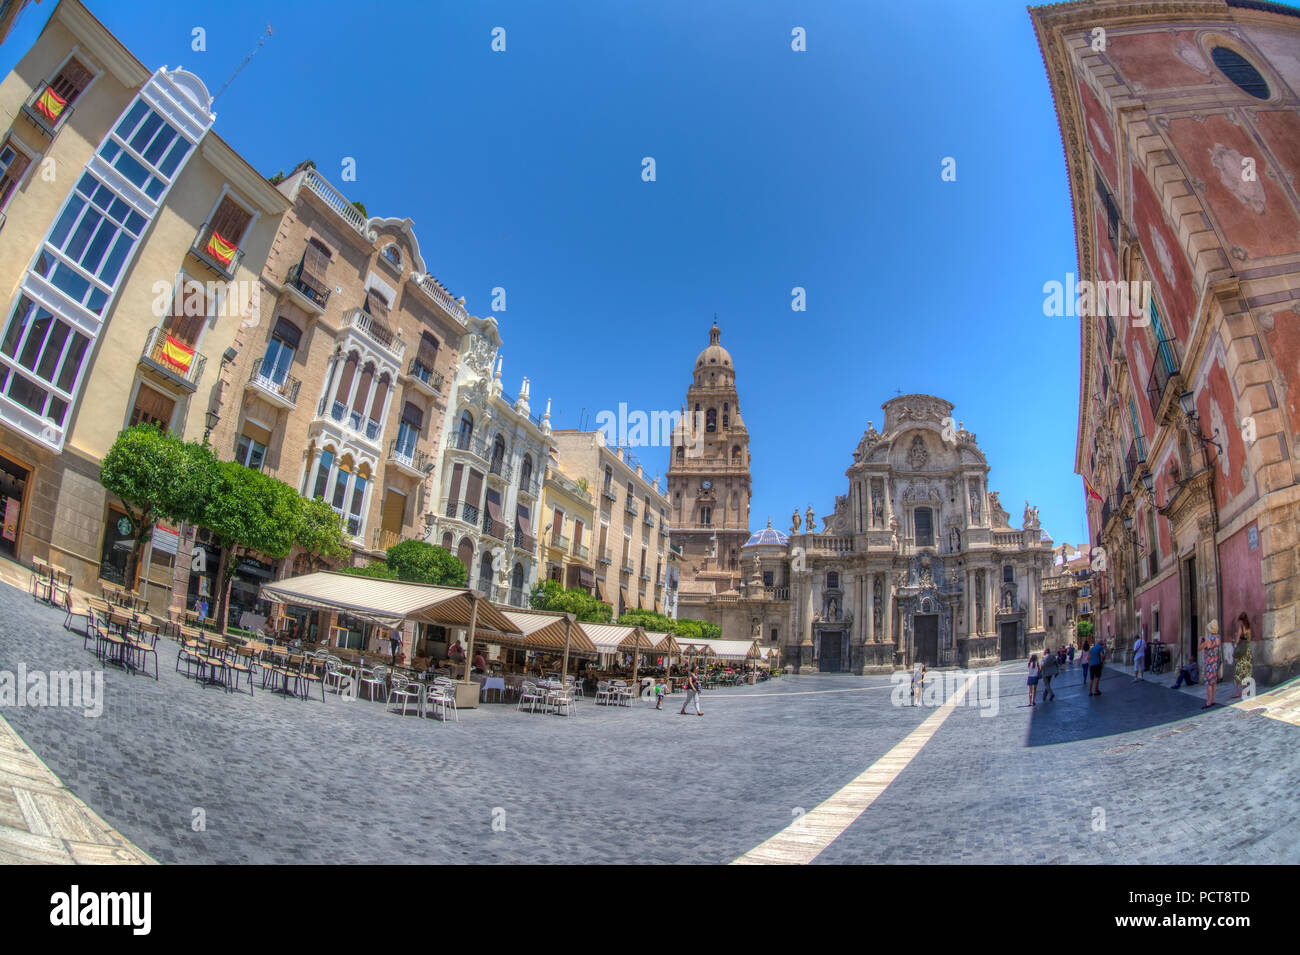 HDR image of the Plaza del Cardenal Belluga with Murcia Cathedral and Bell Tower, Murcia Spain - Stock Image